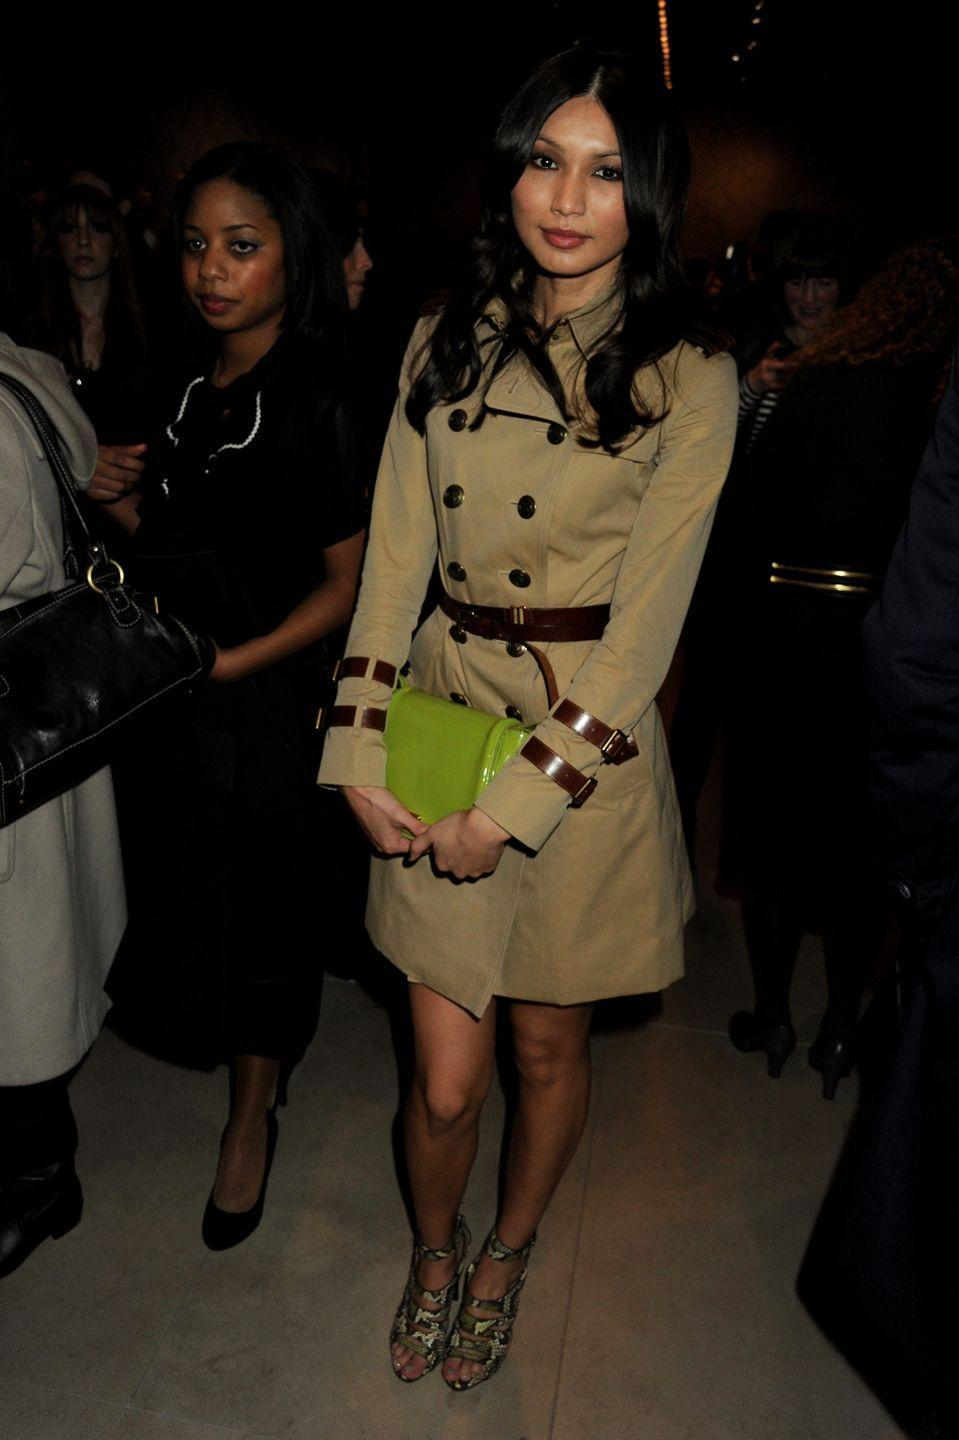 <p>The Burberry FROW could not be complete without classic nods to the brand's unforgettable heritage. </p><p>Chan wore a refreshed Burberry Kensington cotton-gabardine trench with a lime green clutch and neon snake skin caged heels for the show.</p>